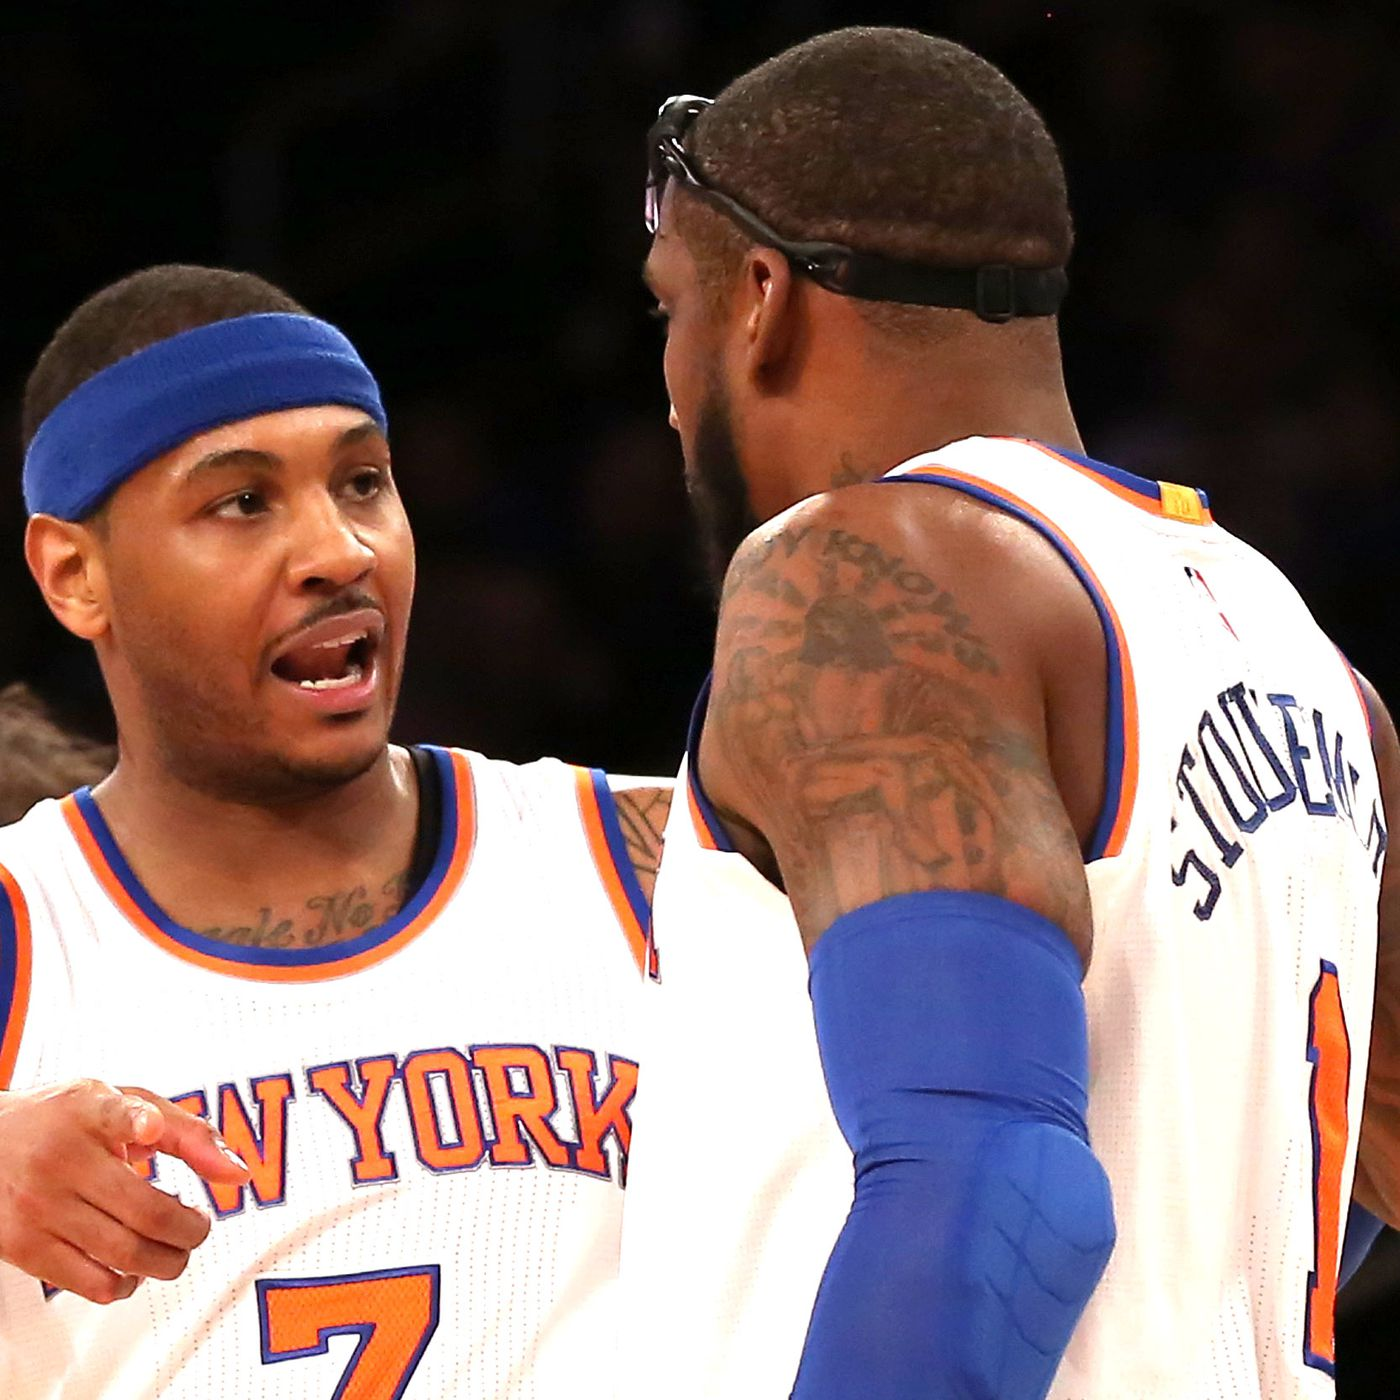 Amar'e Stoudemire said what everyone knew about Carmelo